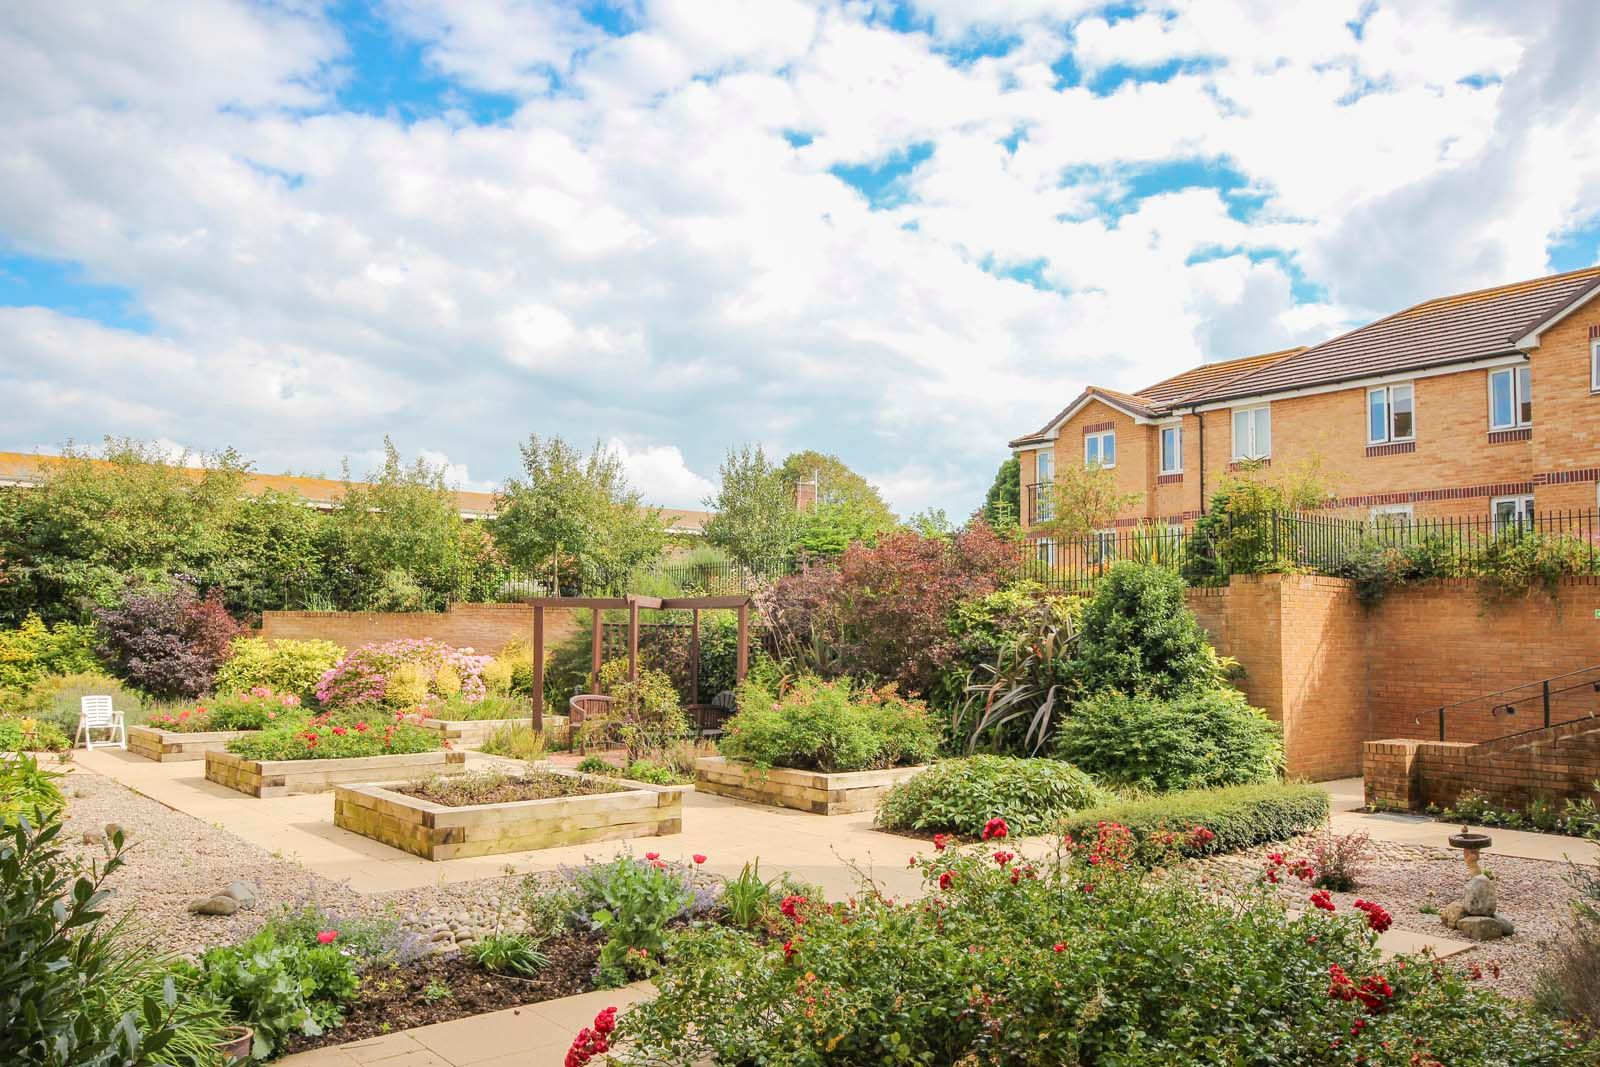 2 bed for sale in East Preston - Communal gardens (Property Image 5)